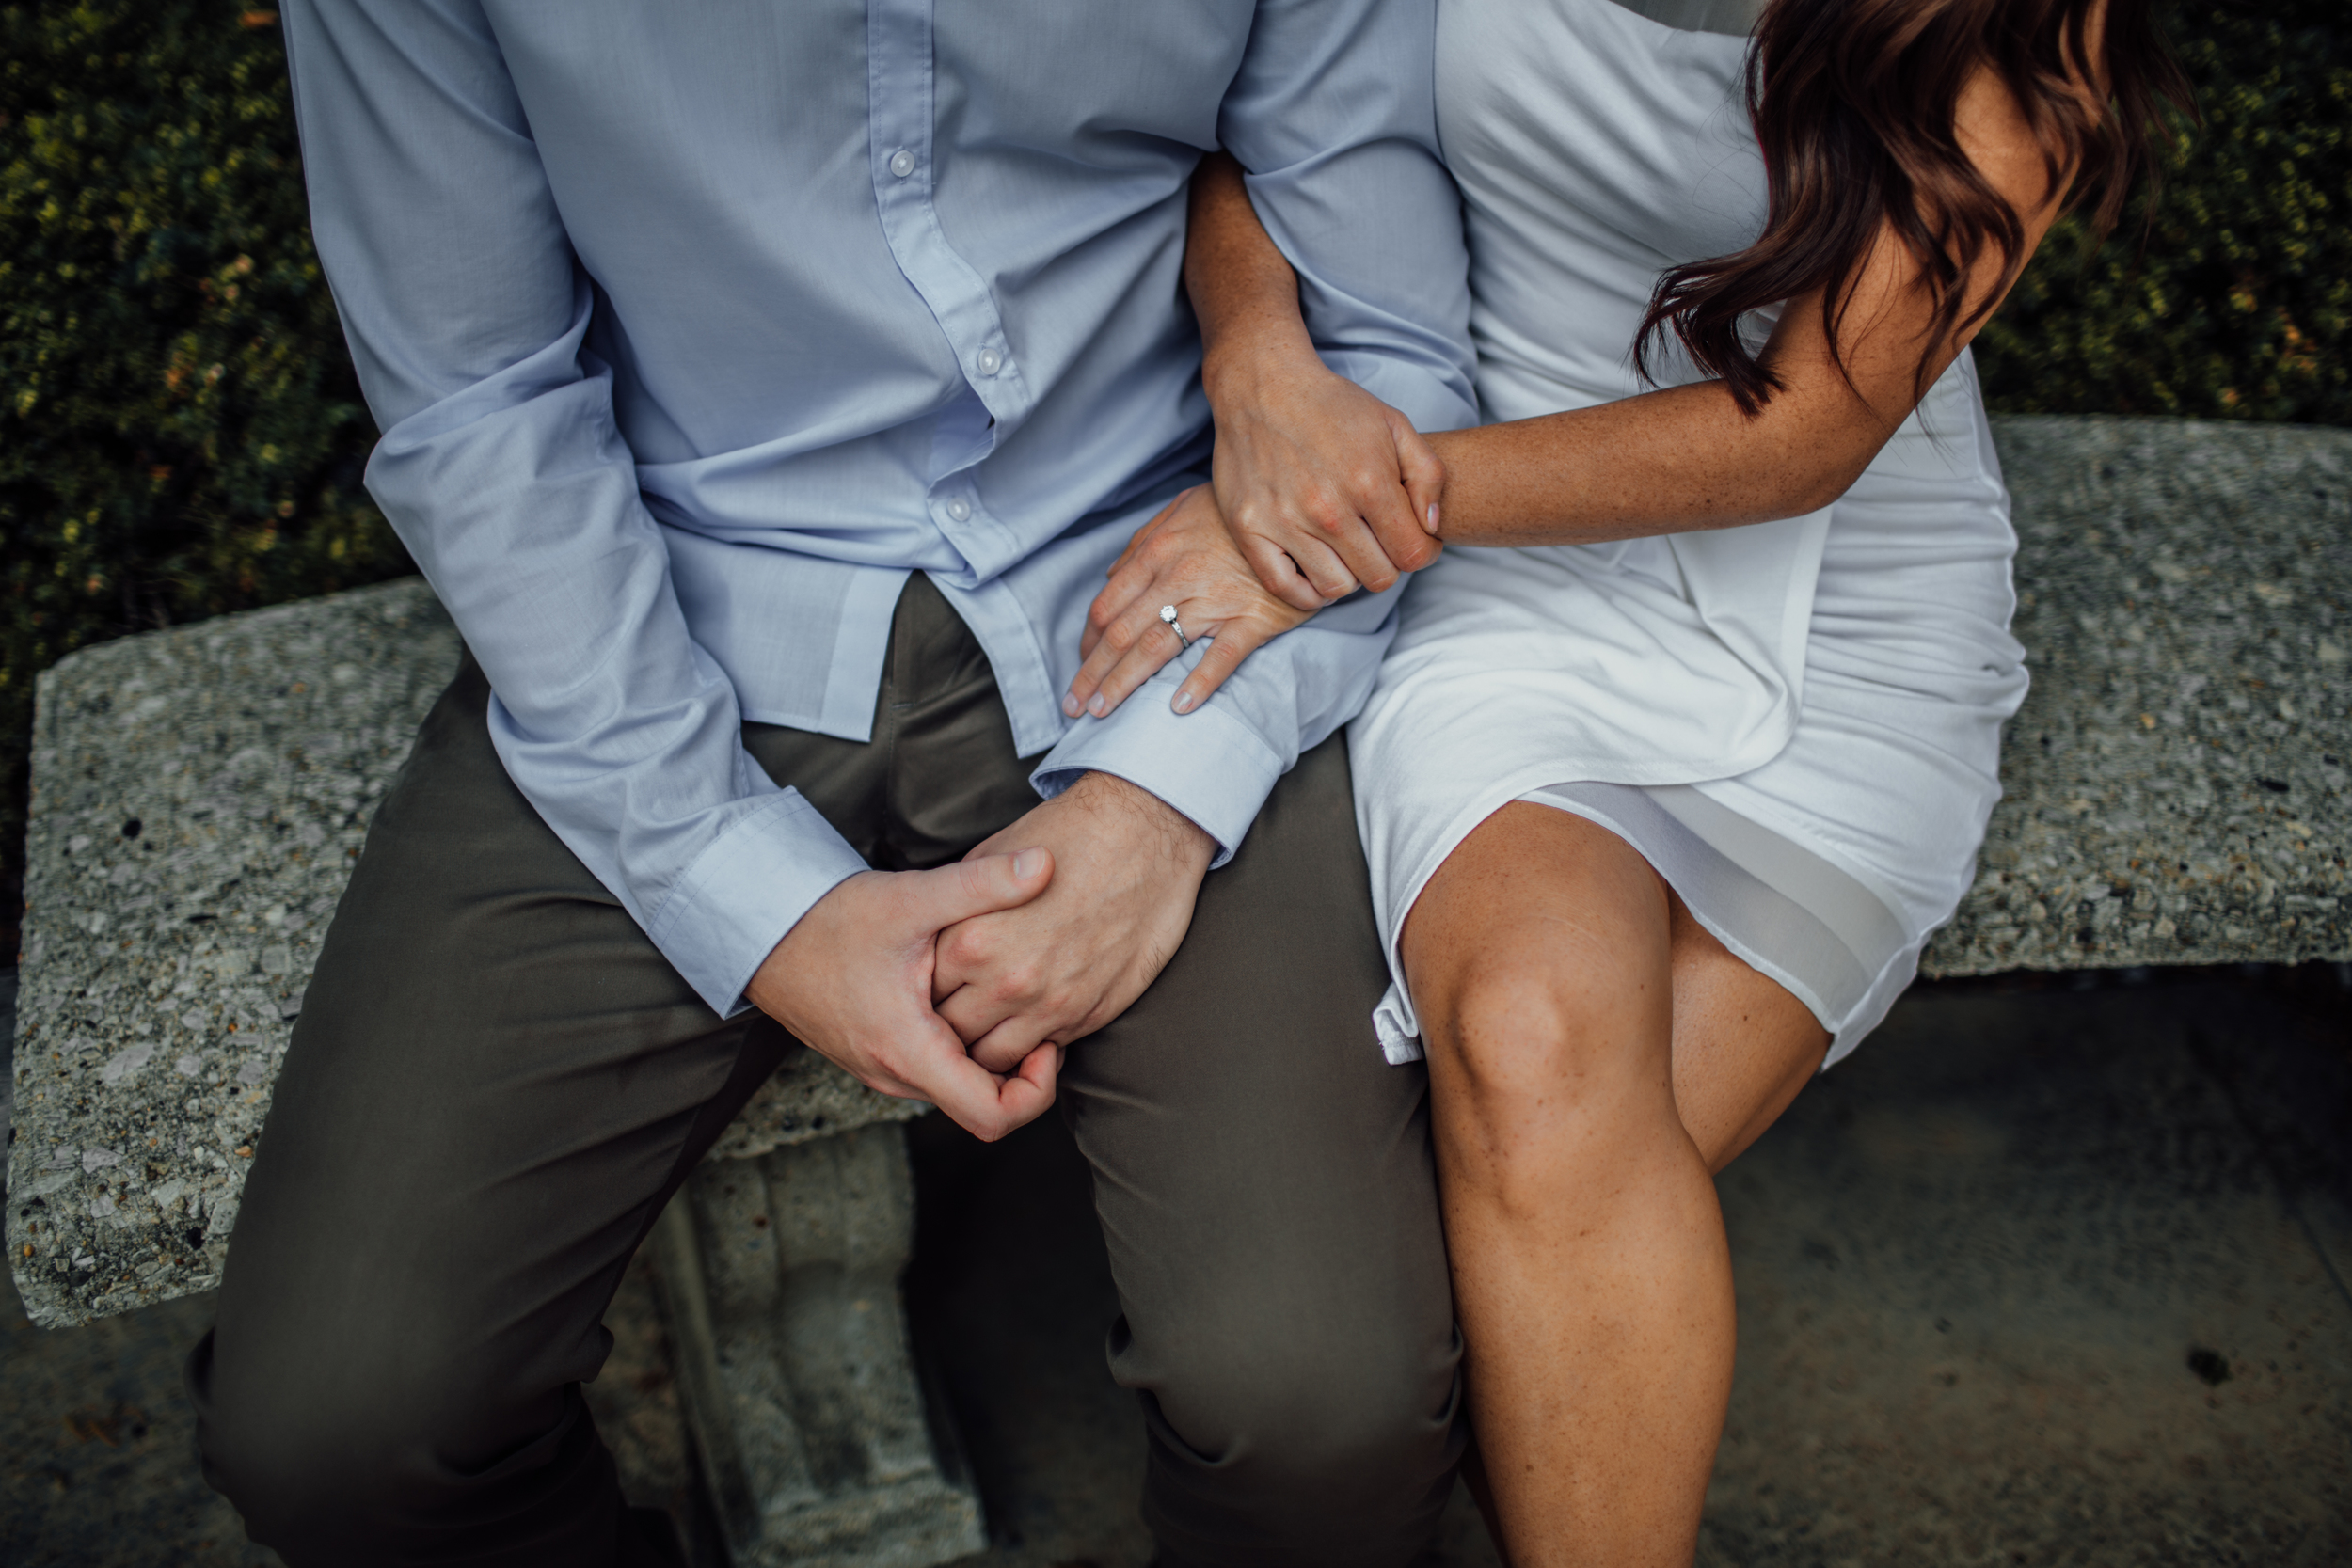 BRITTANYandKEVIN-Engagement2015 (96 of 115).jpg